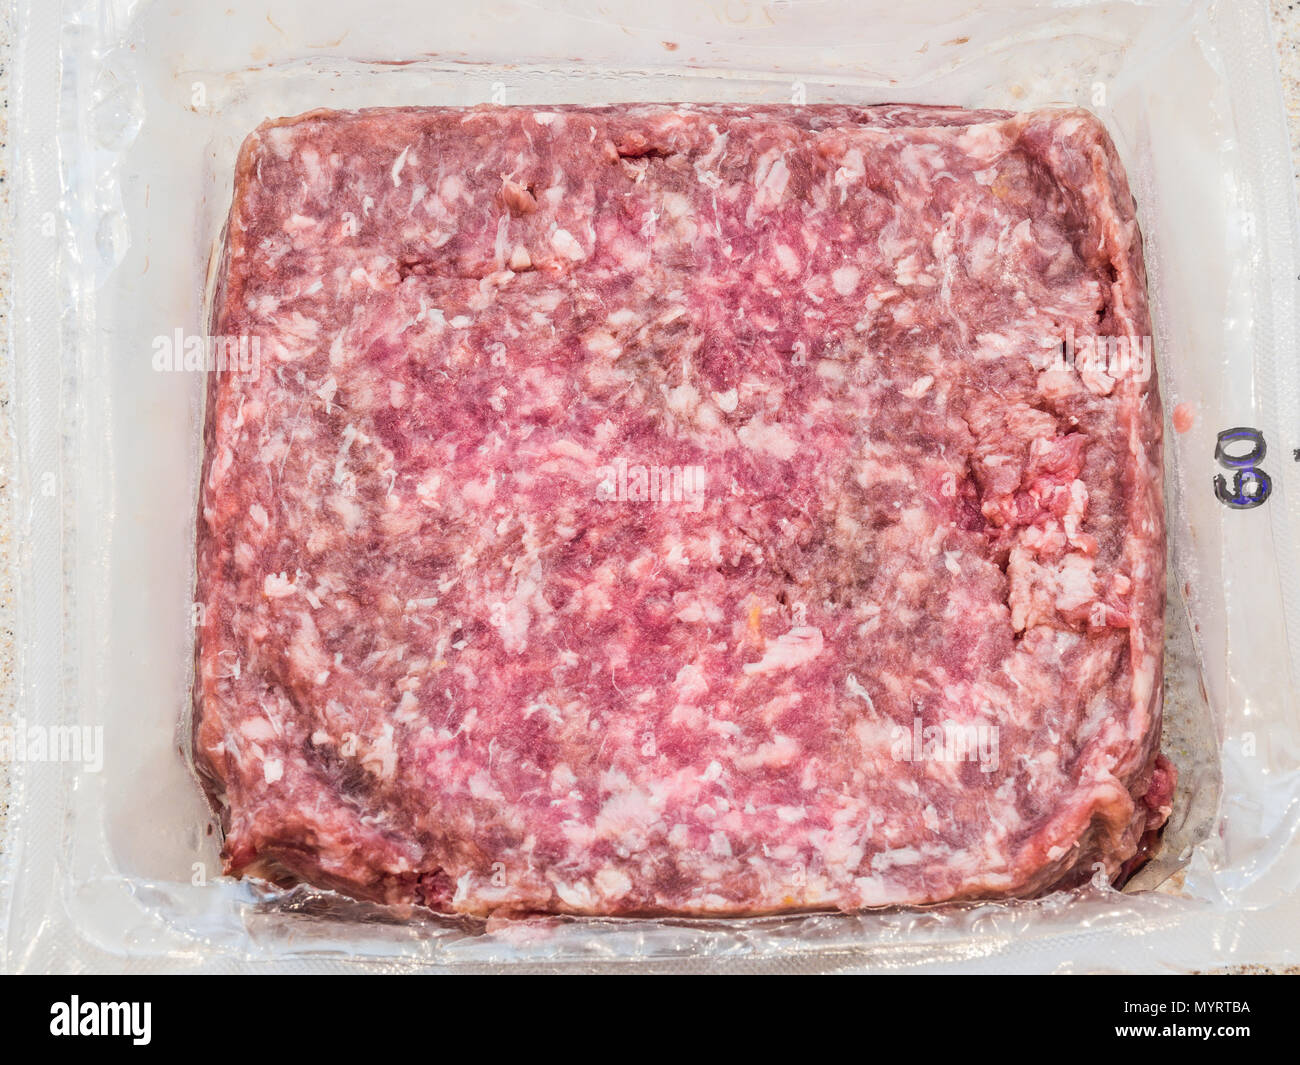 prepared meals dream dinners meatloaf milano with oven roasted broccoli jeatloaf Stock Photo